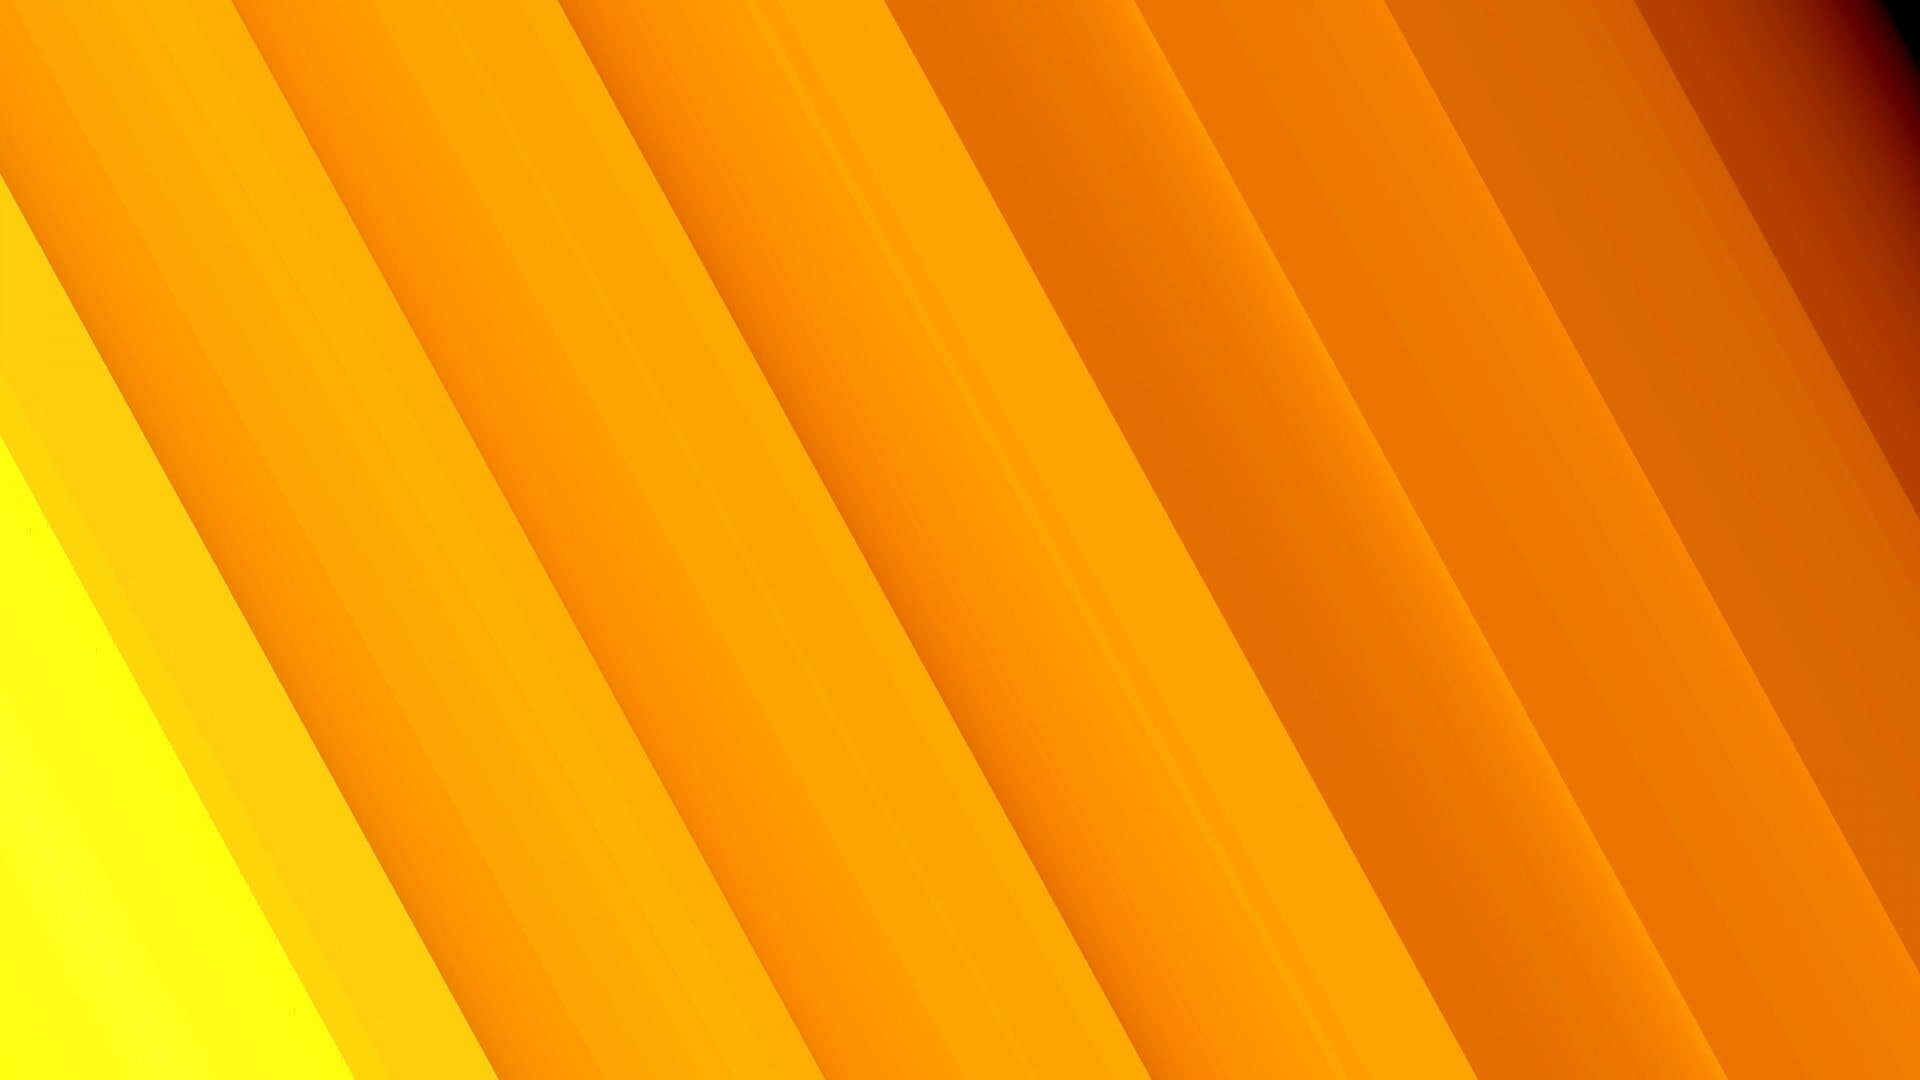 orange-gradient-background-1440541523ZN0